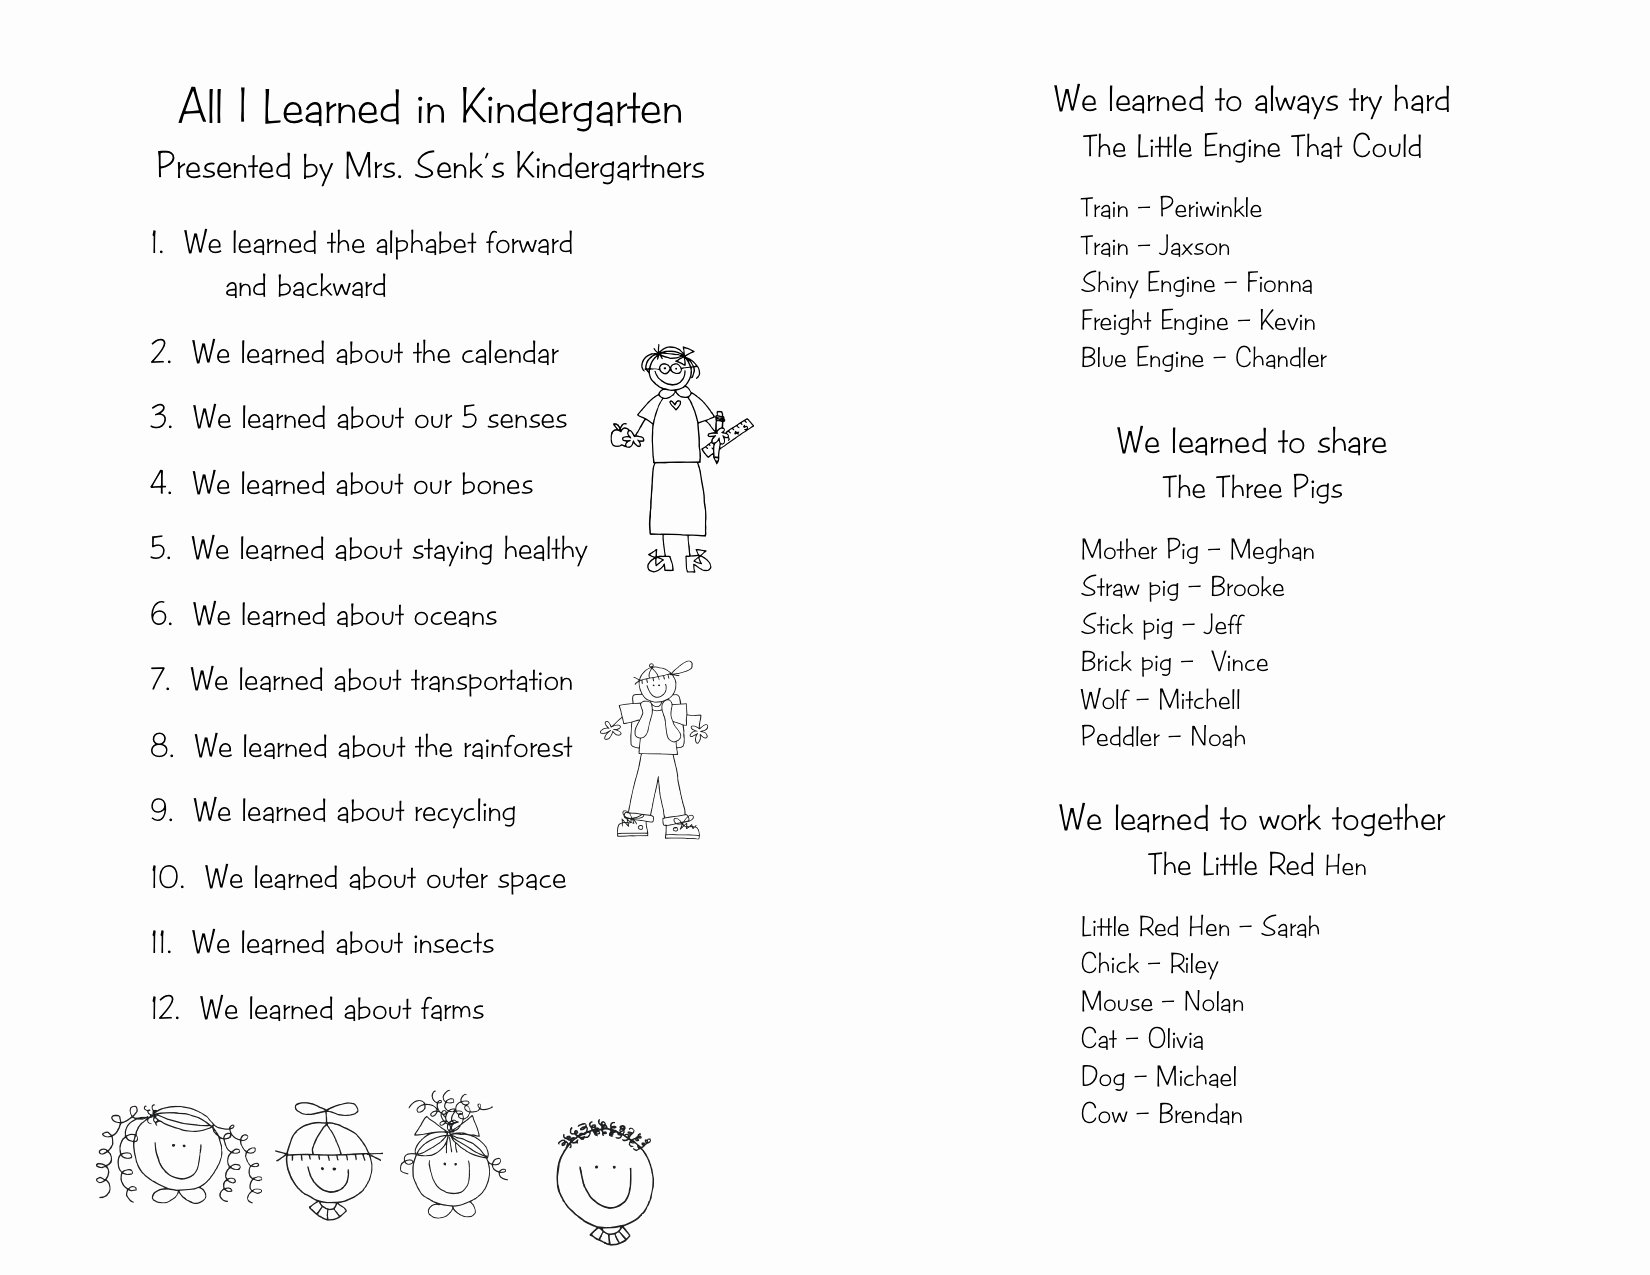 Preschool Graduation Programs Template Inspirational End Of the Year Program